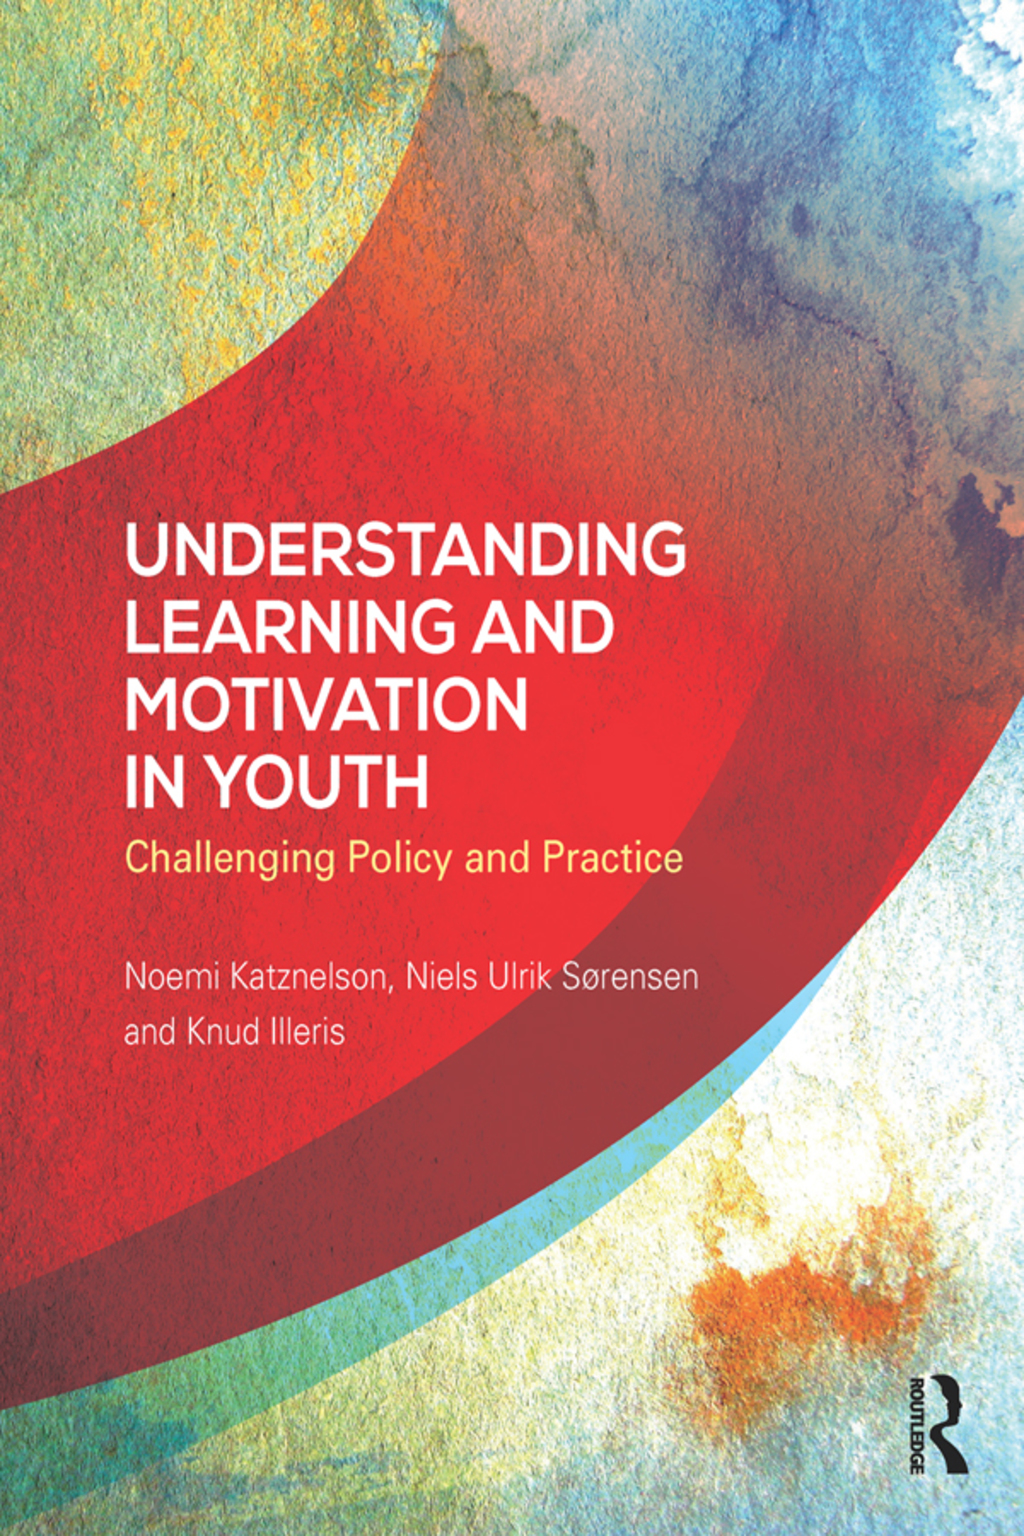 Understanding Learning and Motivation in Youth (eBook Rental)